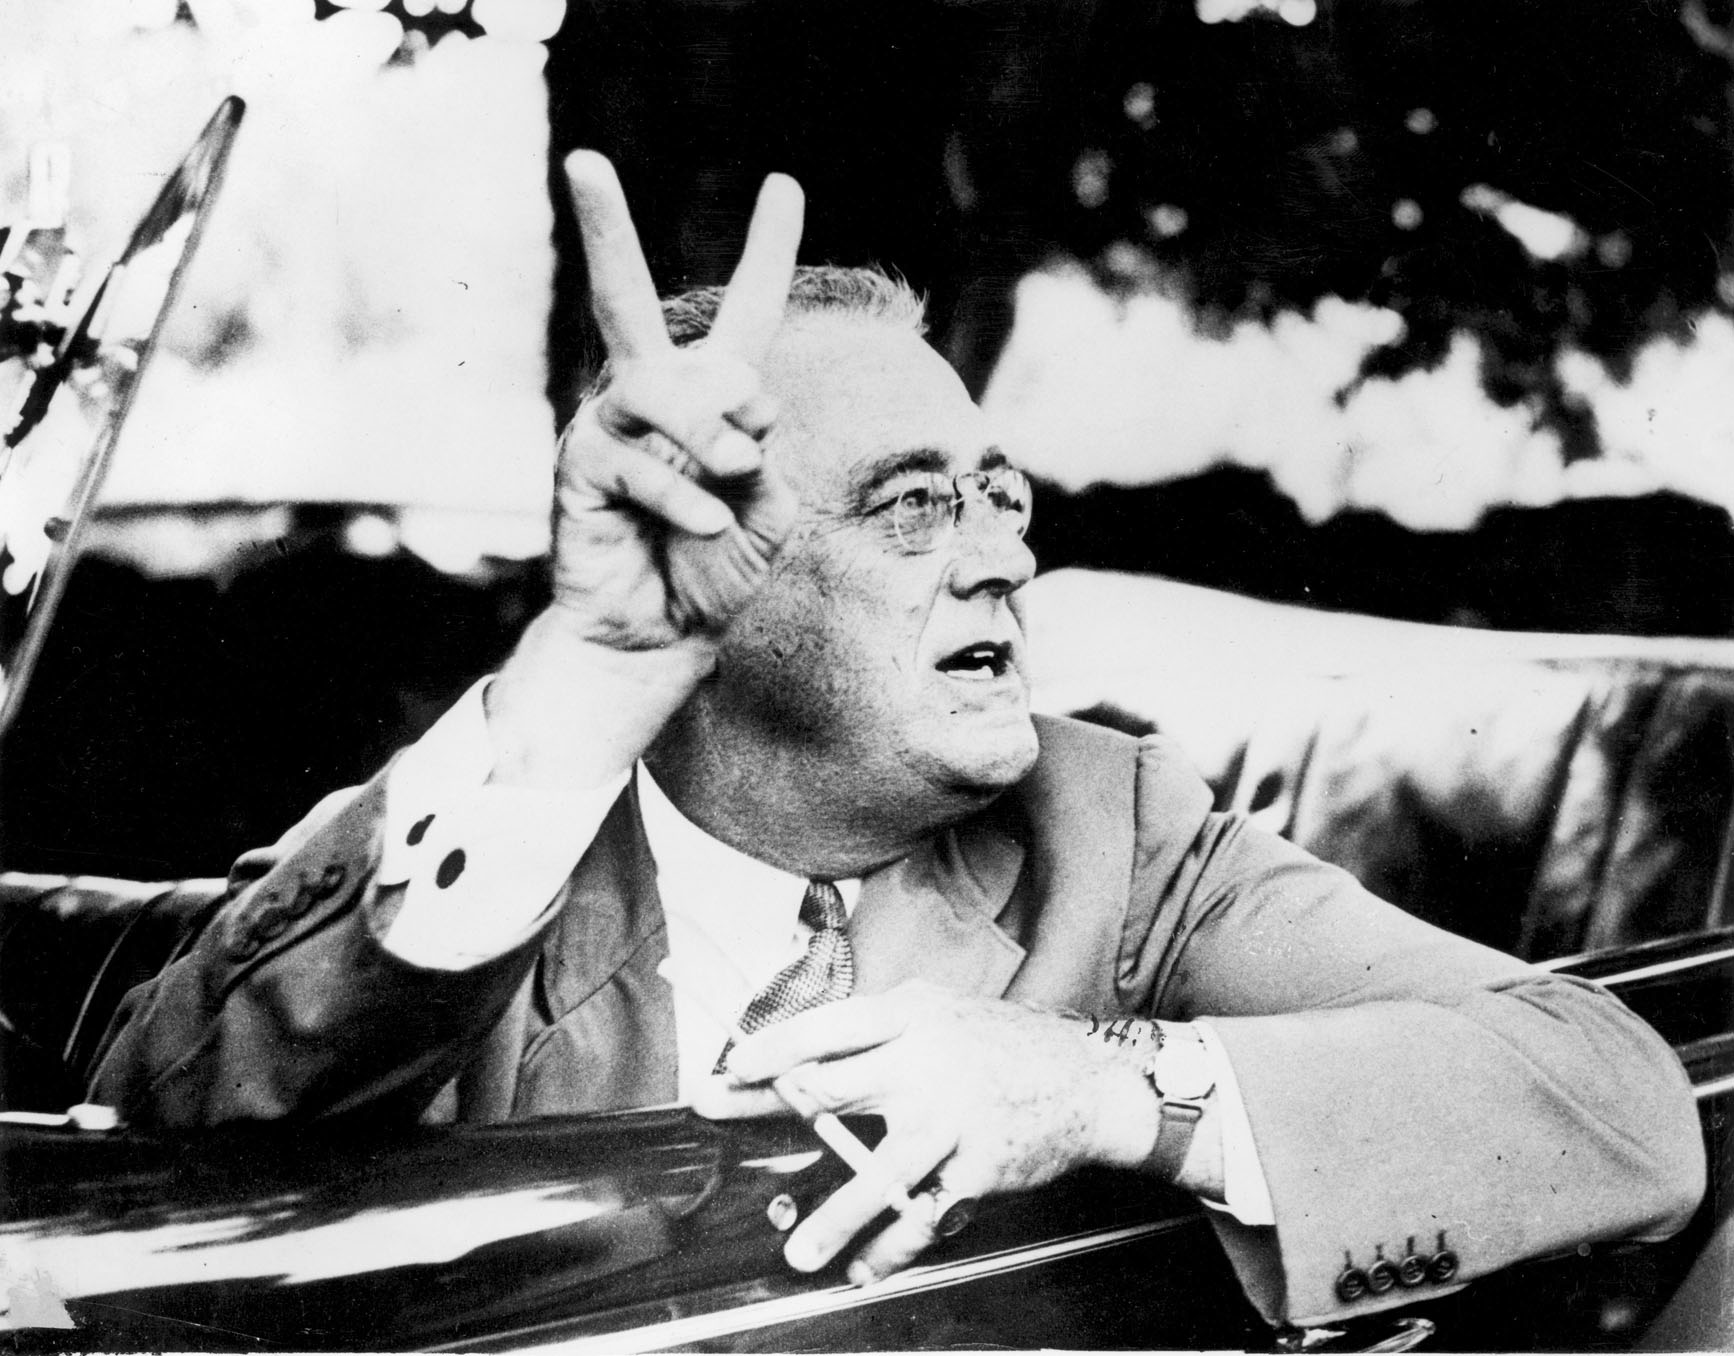 fdr franklin delano roosevelt made america into a superpower fdr franklin delano roosevelt made america into a superpower ken walsh s washington us news